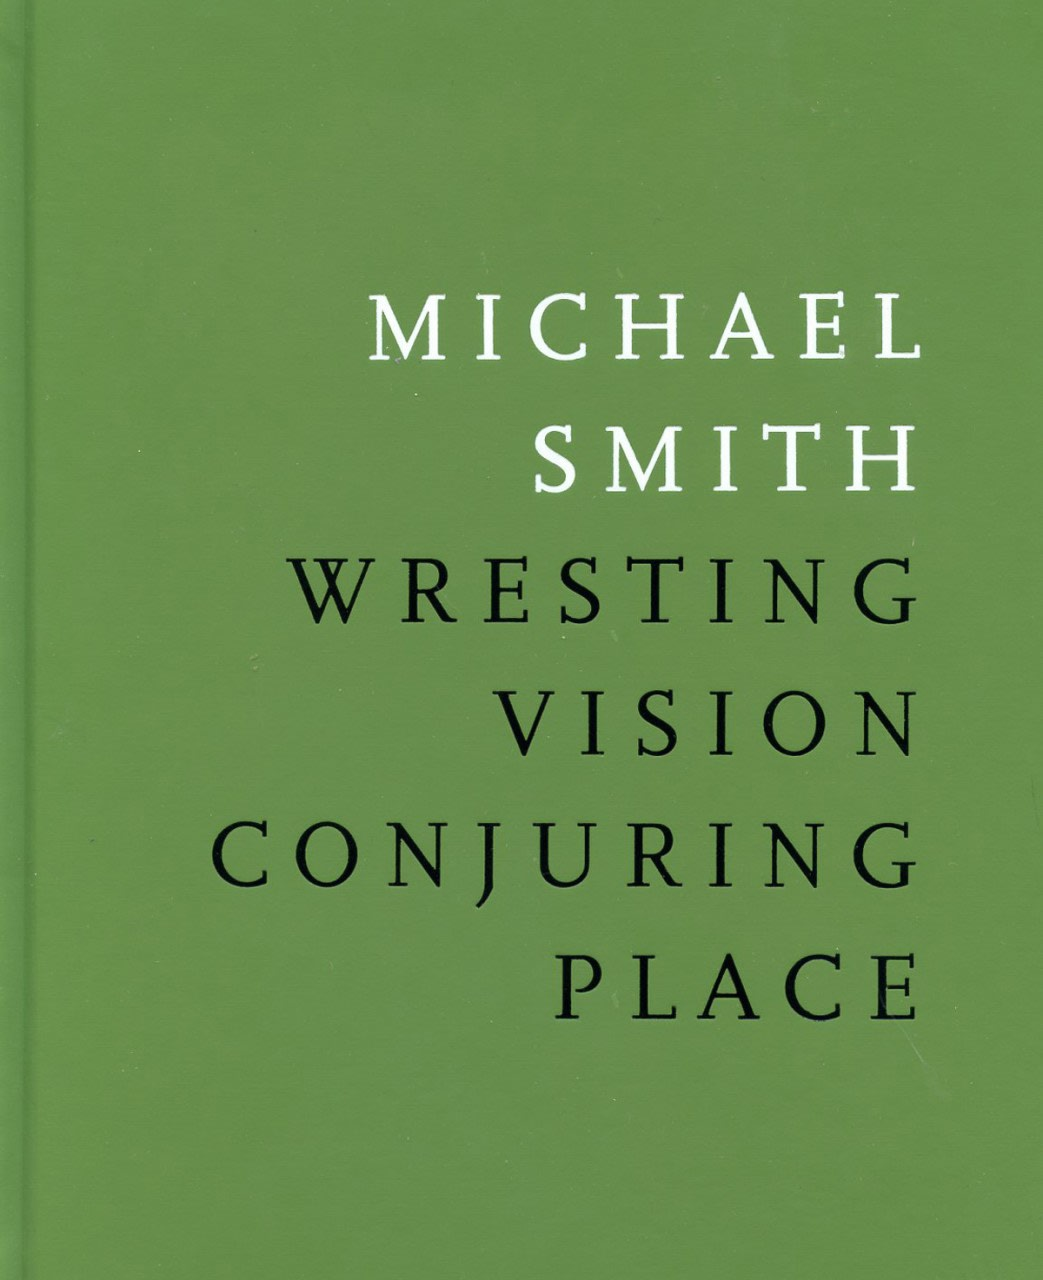 Michael Smith | Wresting Vision, Conjuring Place